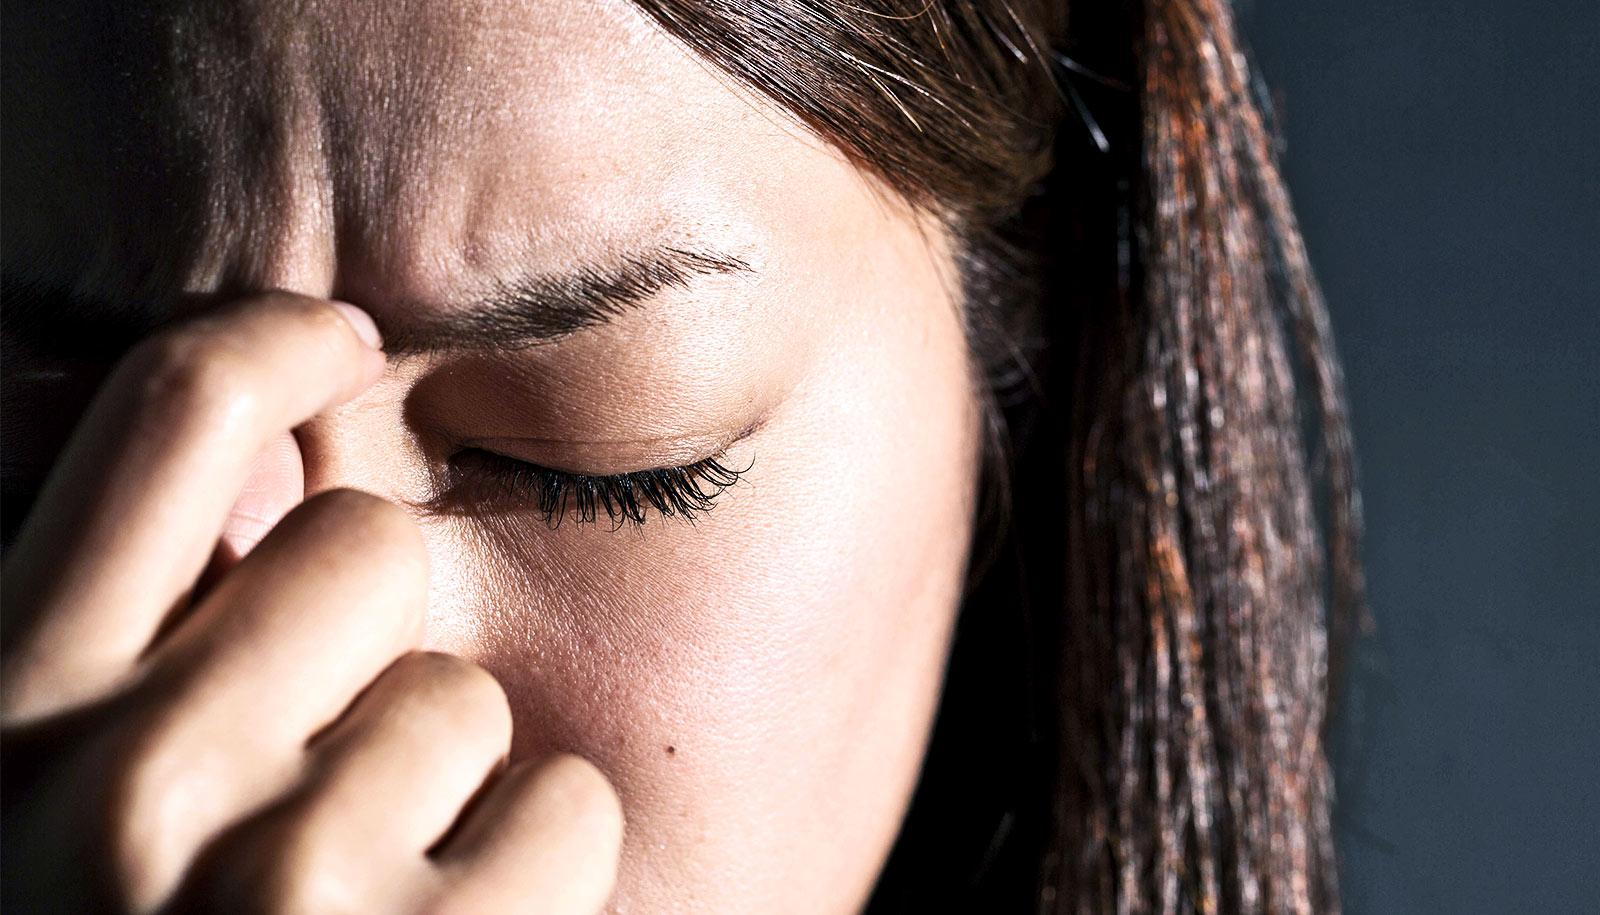 stressed woman with eyes closed (debt relief concept)